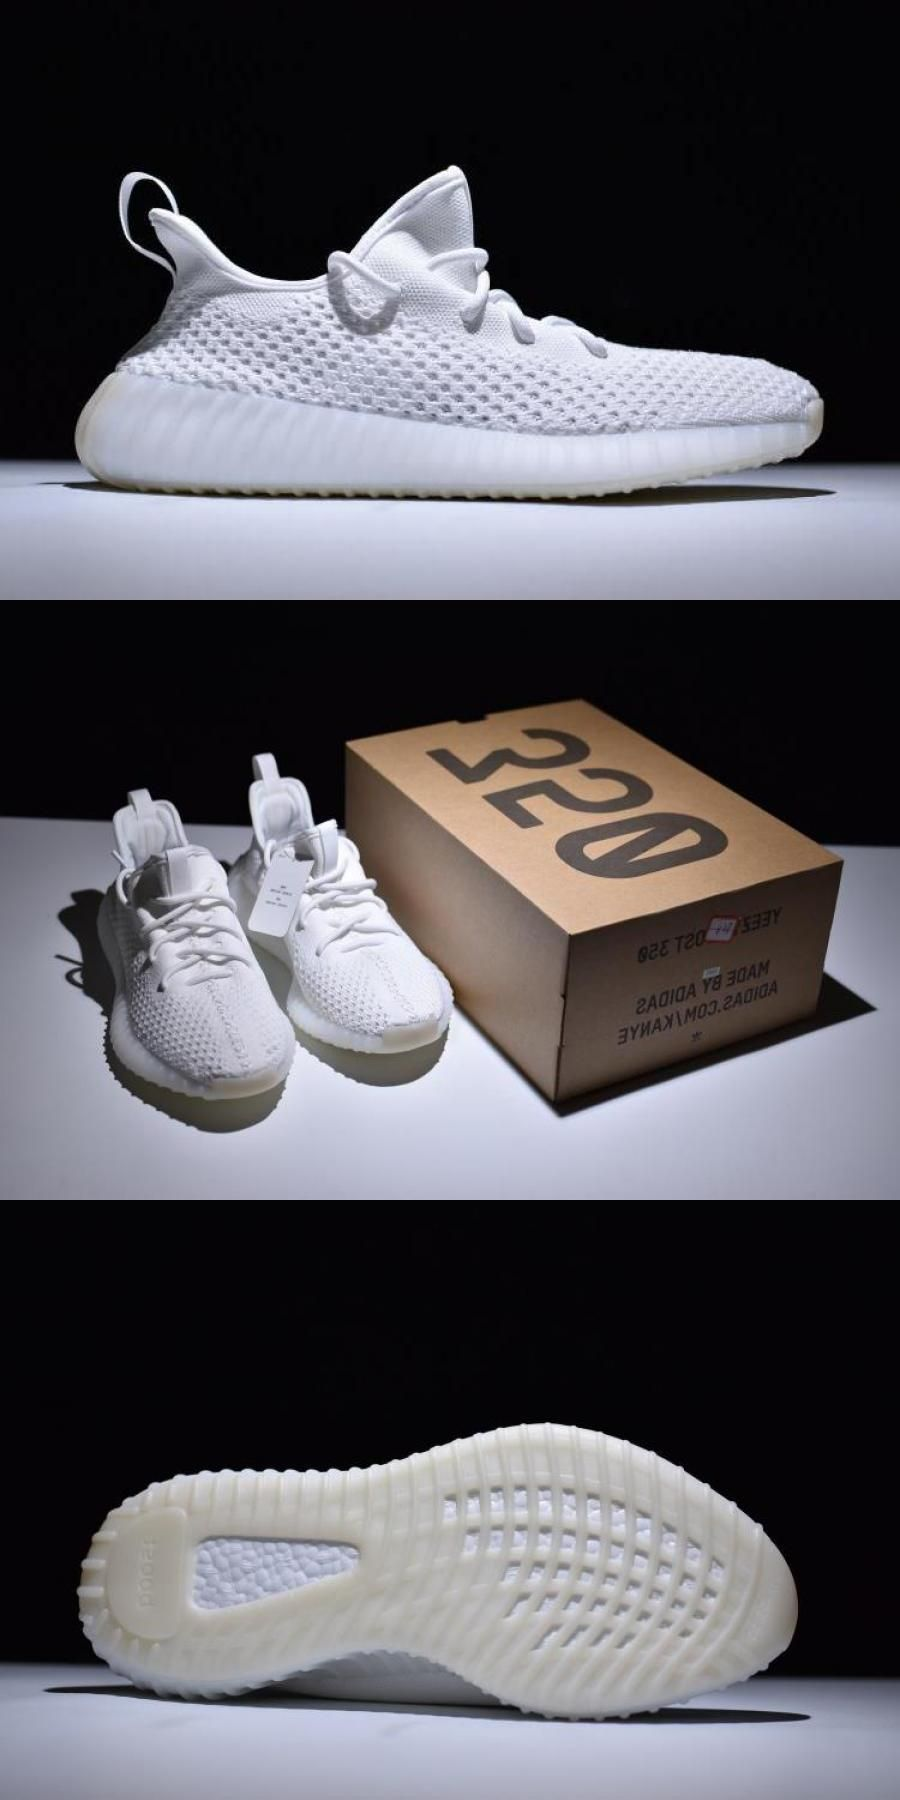 Adidas Yeezy Boost 350 V2 Synth Coming Soon First Look